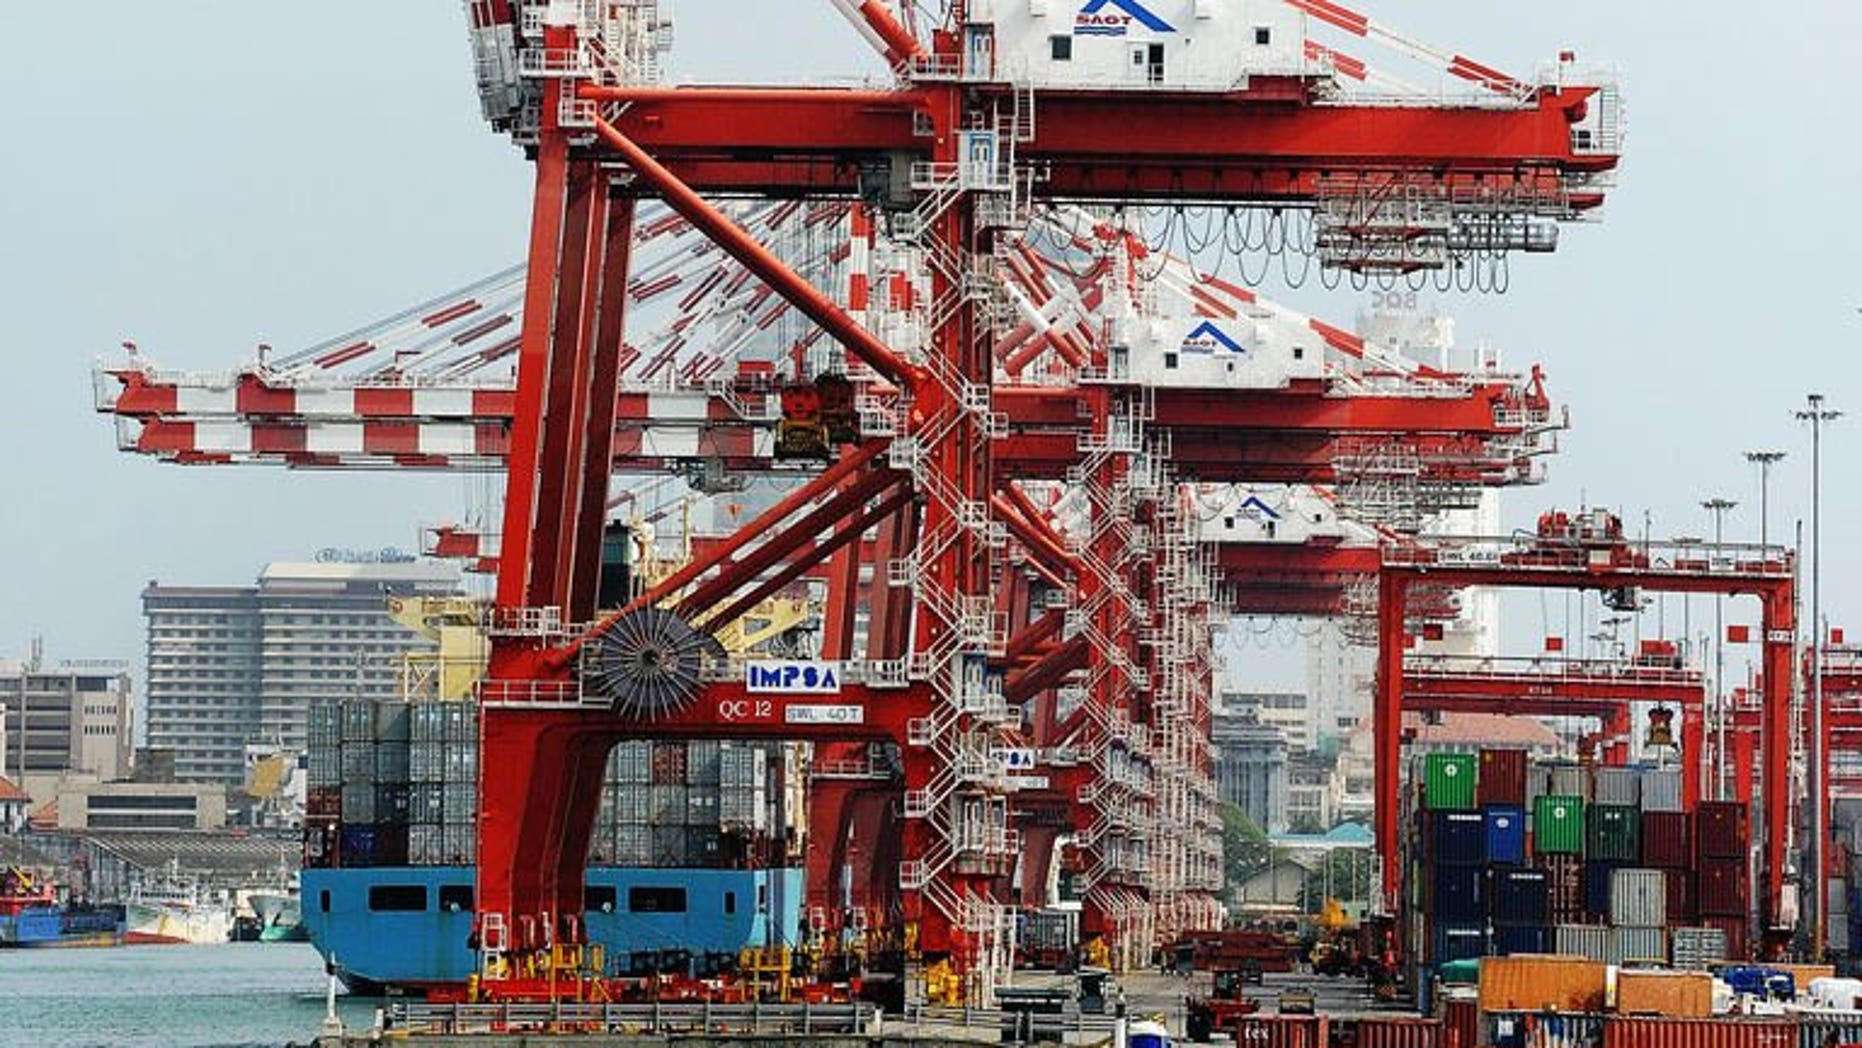 This photograph taken on July 24, 2013, shows a container ship at the state-run Jaya Container Terminal of the port of Colombo. A $500 million Chinese-built port opens Monday in Sri Lanka, giving Beijing a vital foothold on the world's busiest international shipping lane as it seeks to secure maritime supply routes.